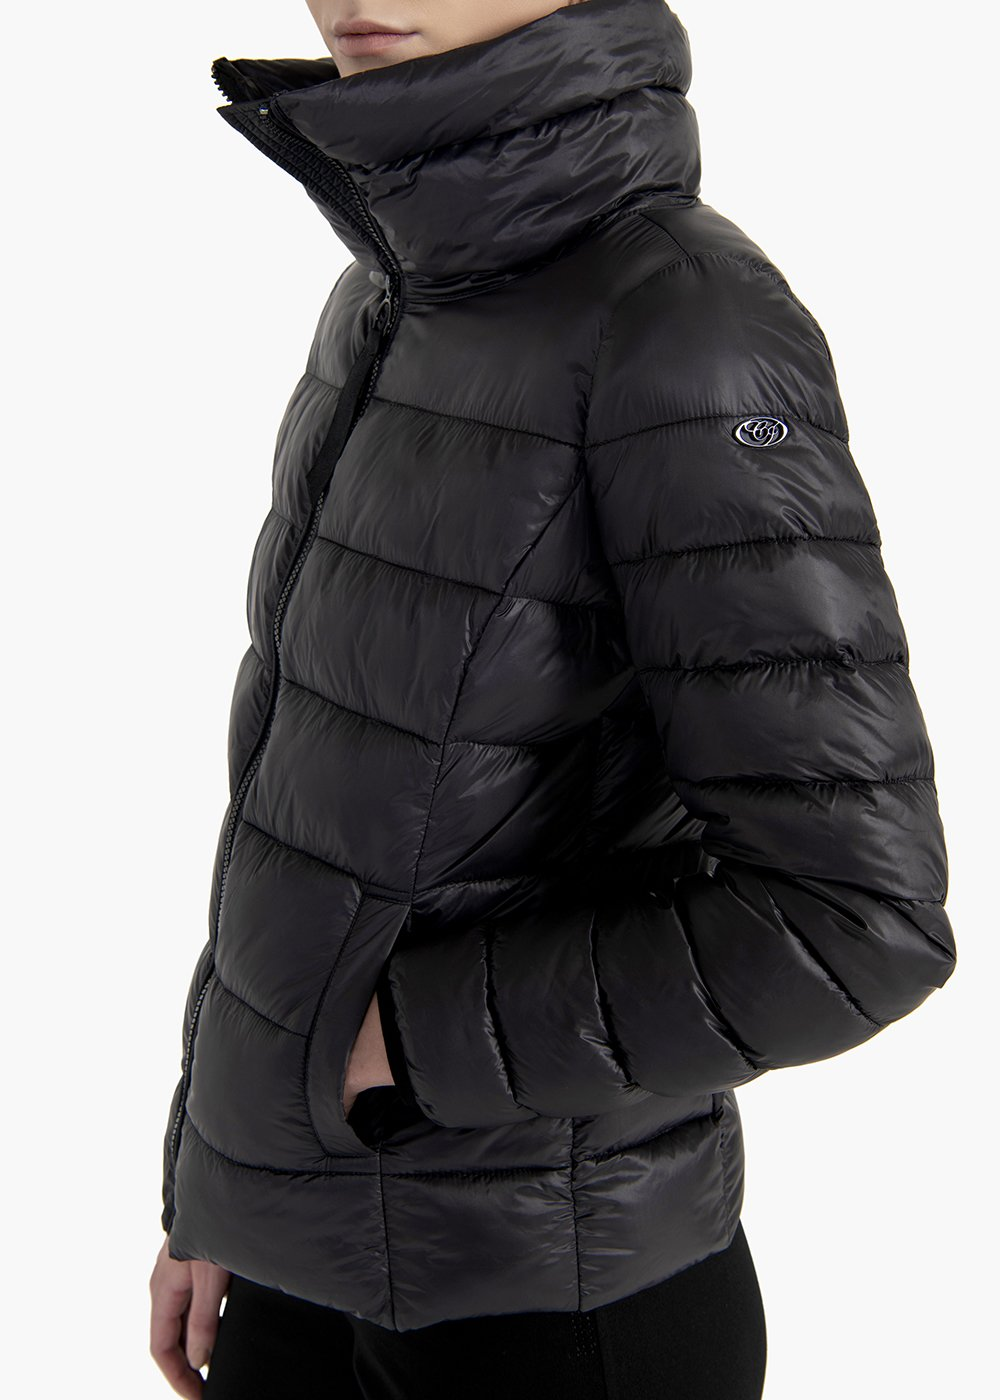 Garret ultralight jacket with high collar - Black - Woman